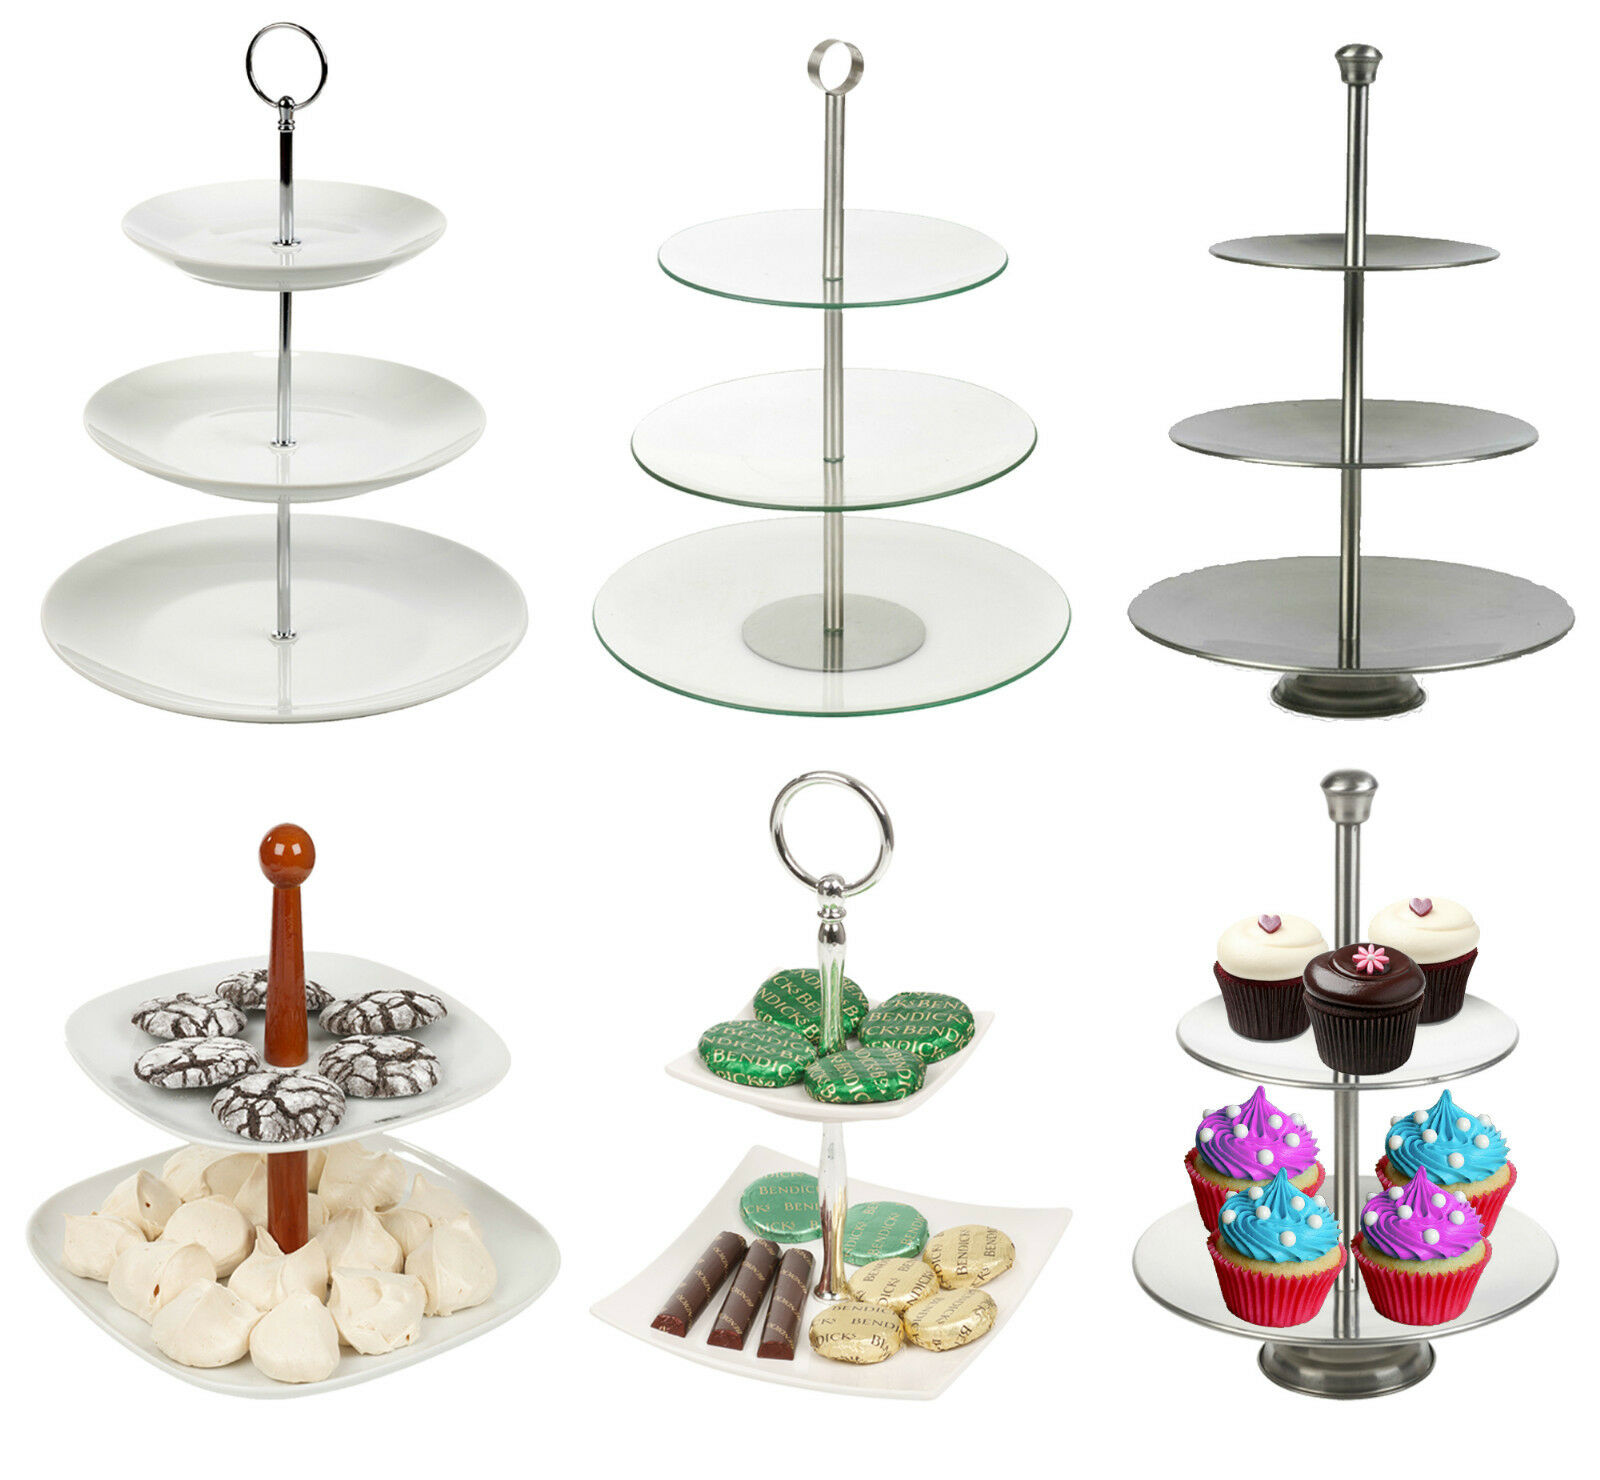 Riser That Can Be Used As A Cake Stand